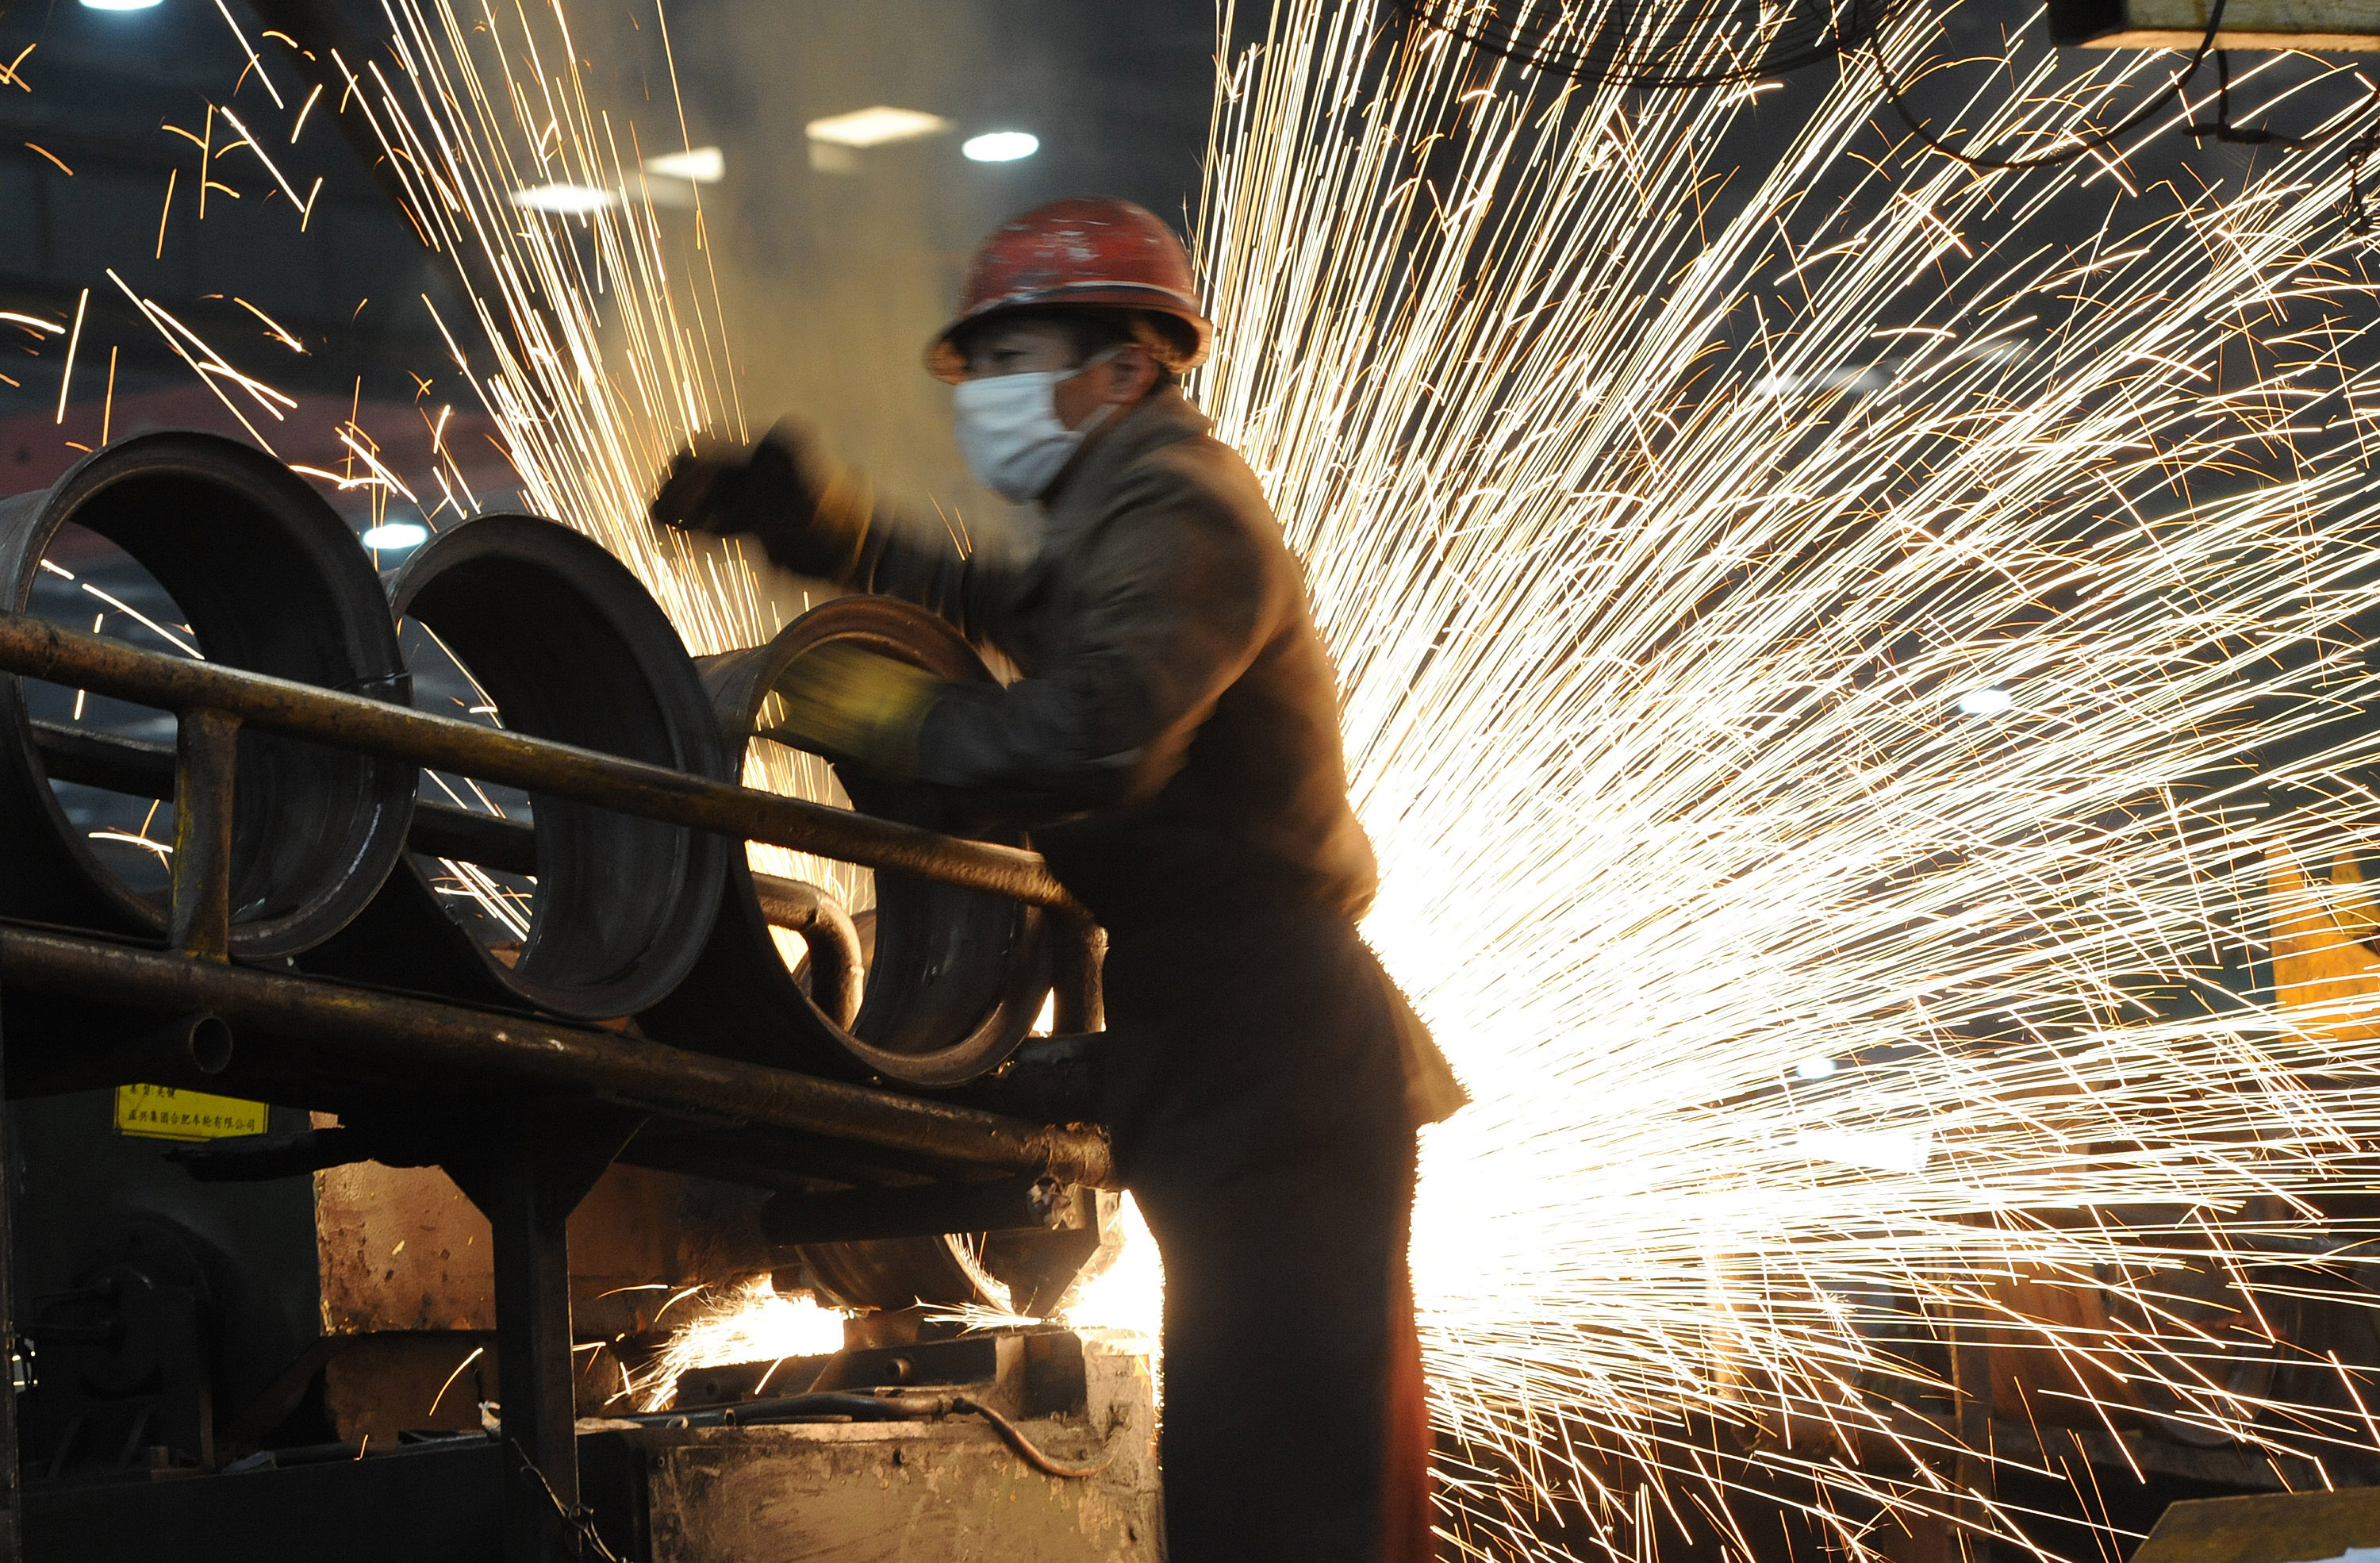 A Chinese worker goes about his chores at a steel mill in Hefei, in eastern China's Anhui province.